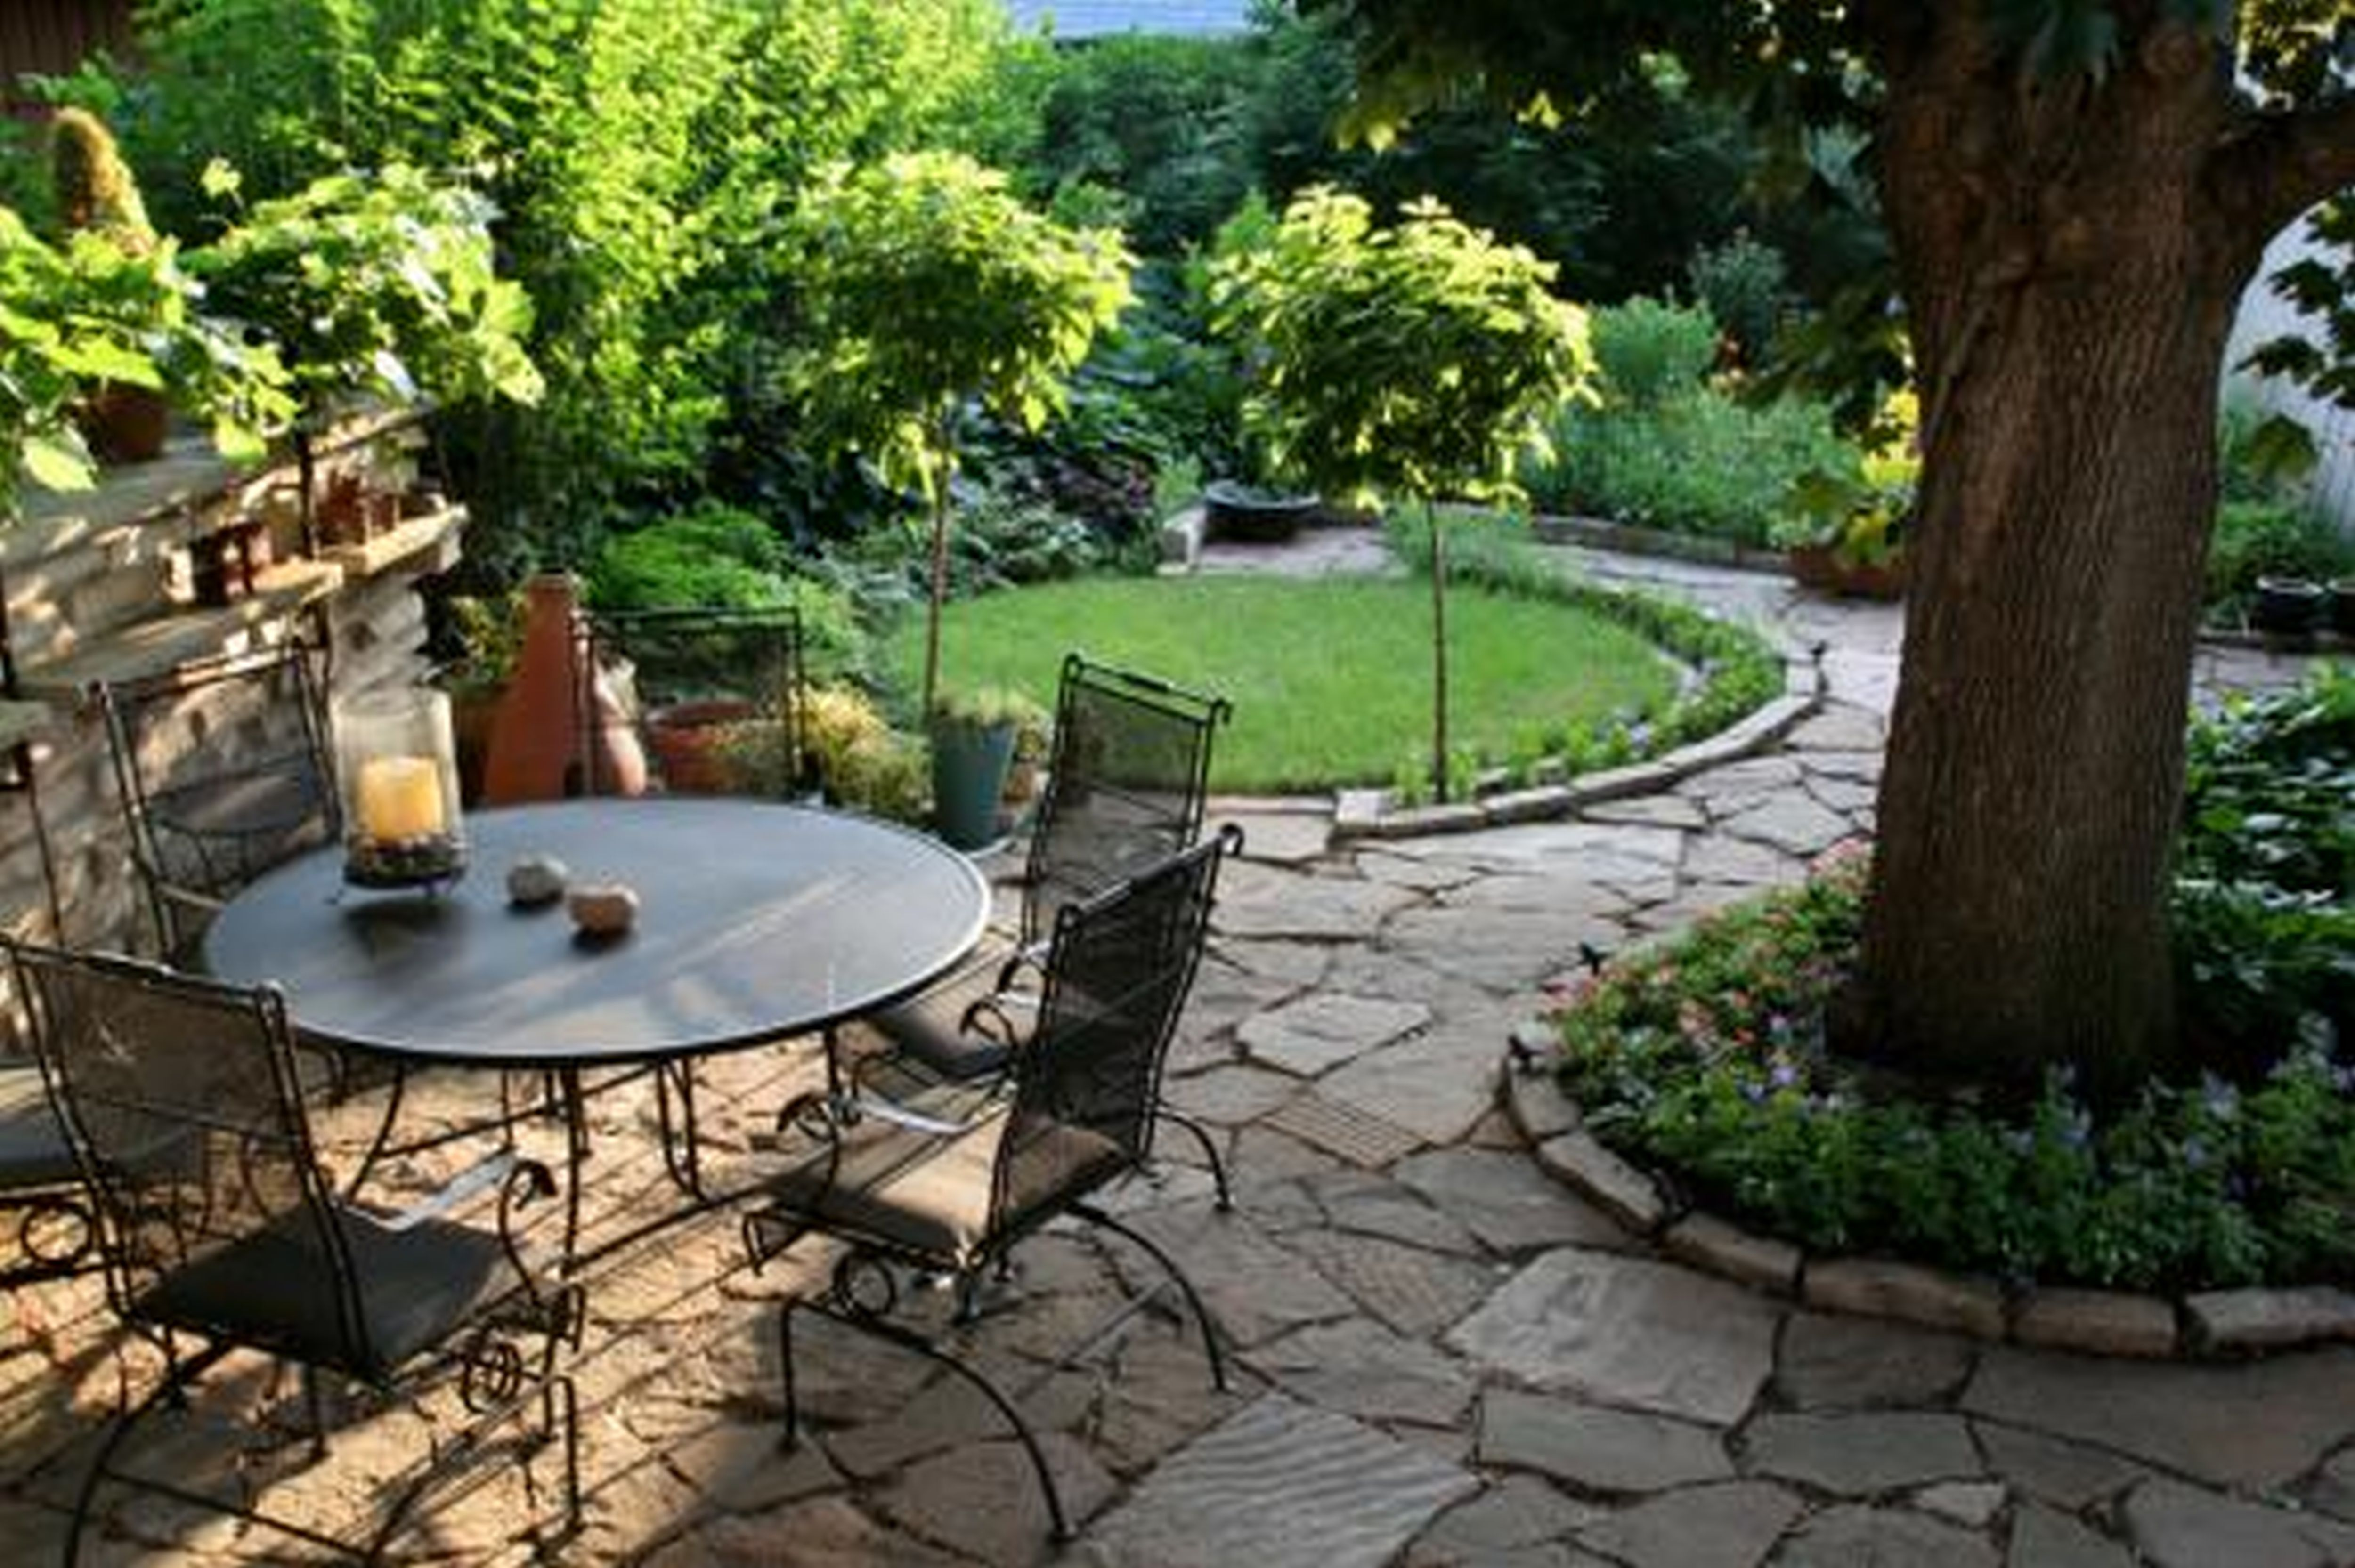 after breathing room landscaping ideas for small backyards – Landscape Design Ideas for Small Backyards